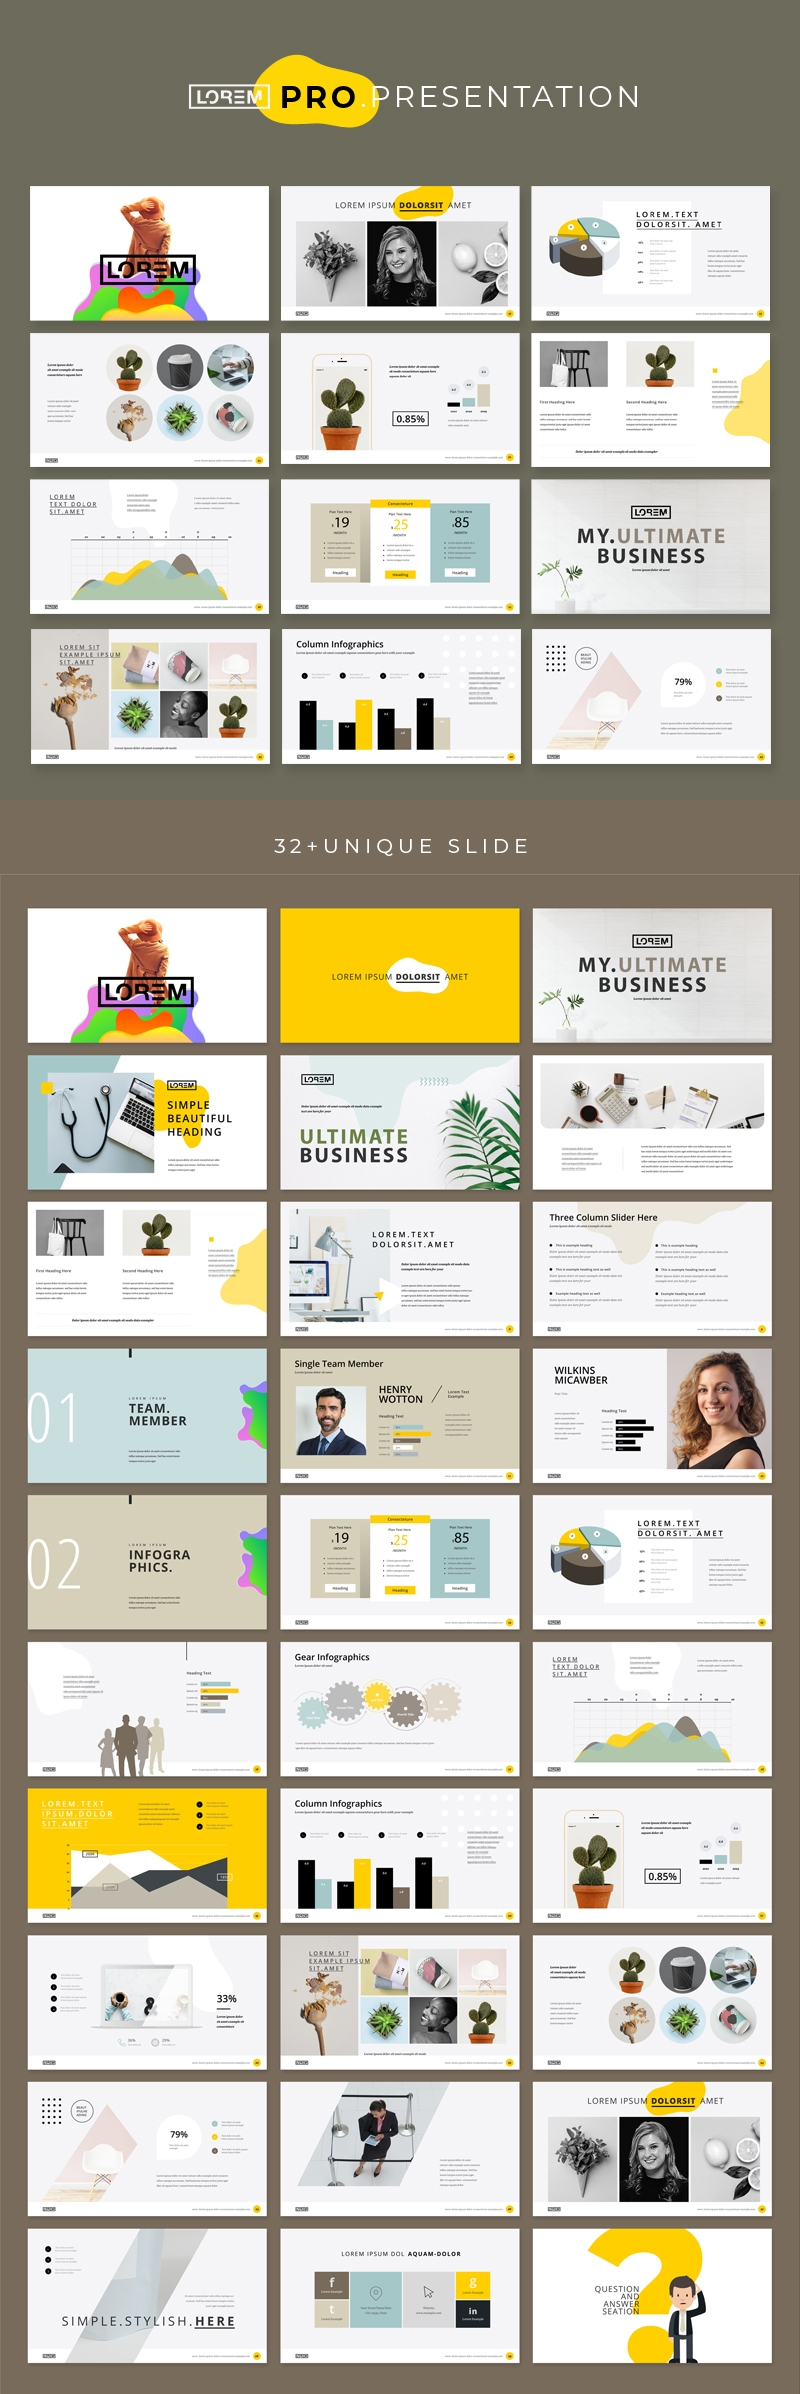 Clean Presentation Layout with Yellow Accents